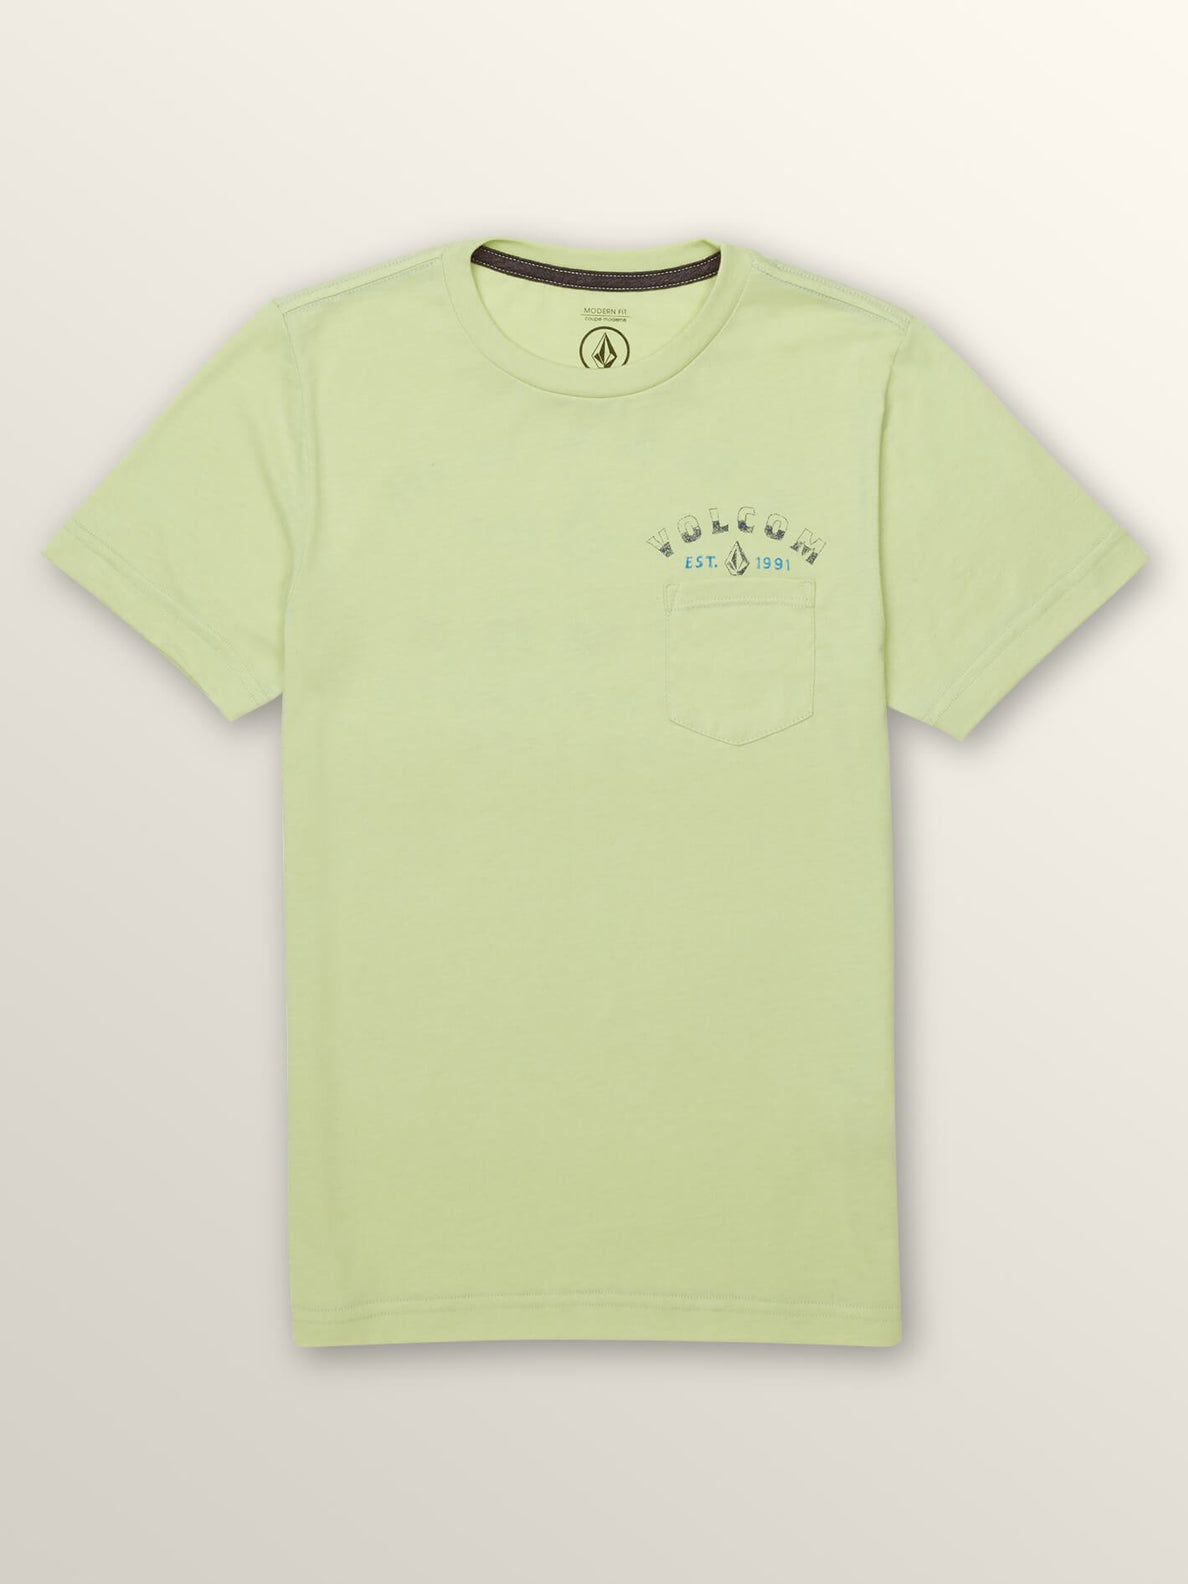 Big Boys Signer Short Sleeve Pocket Tee In Mist Green, Front View